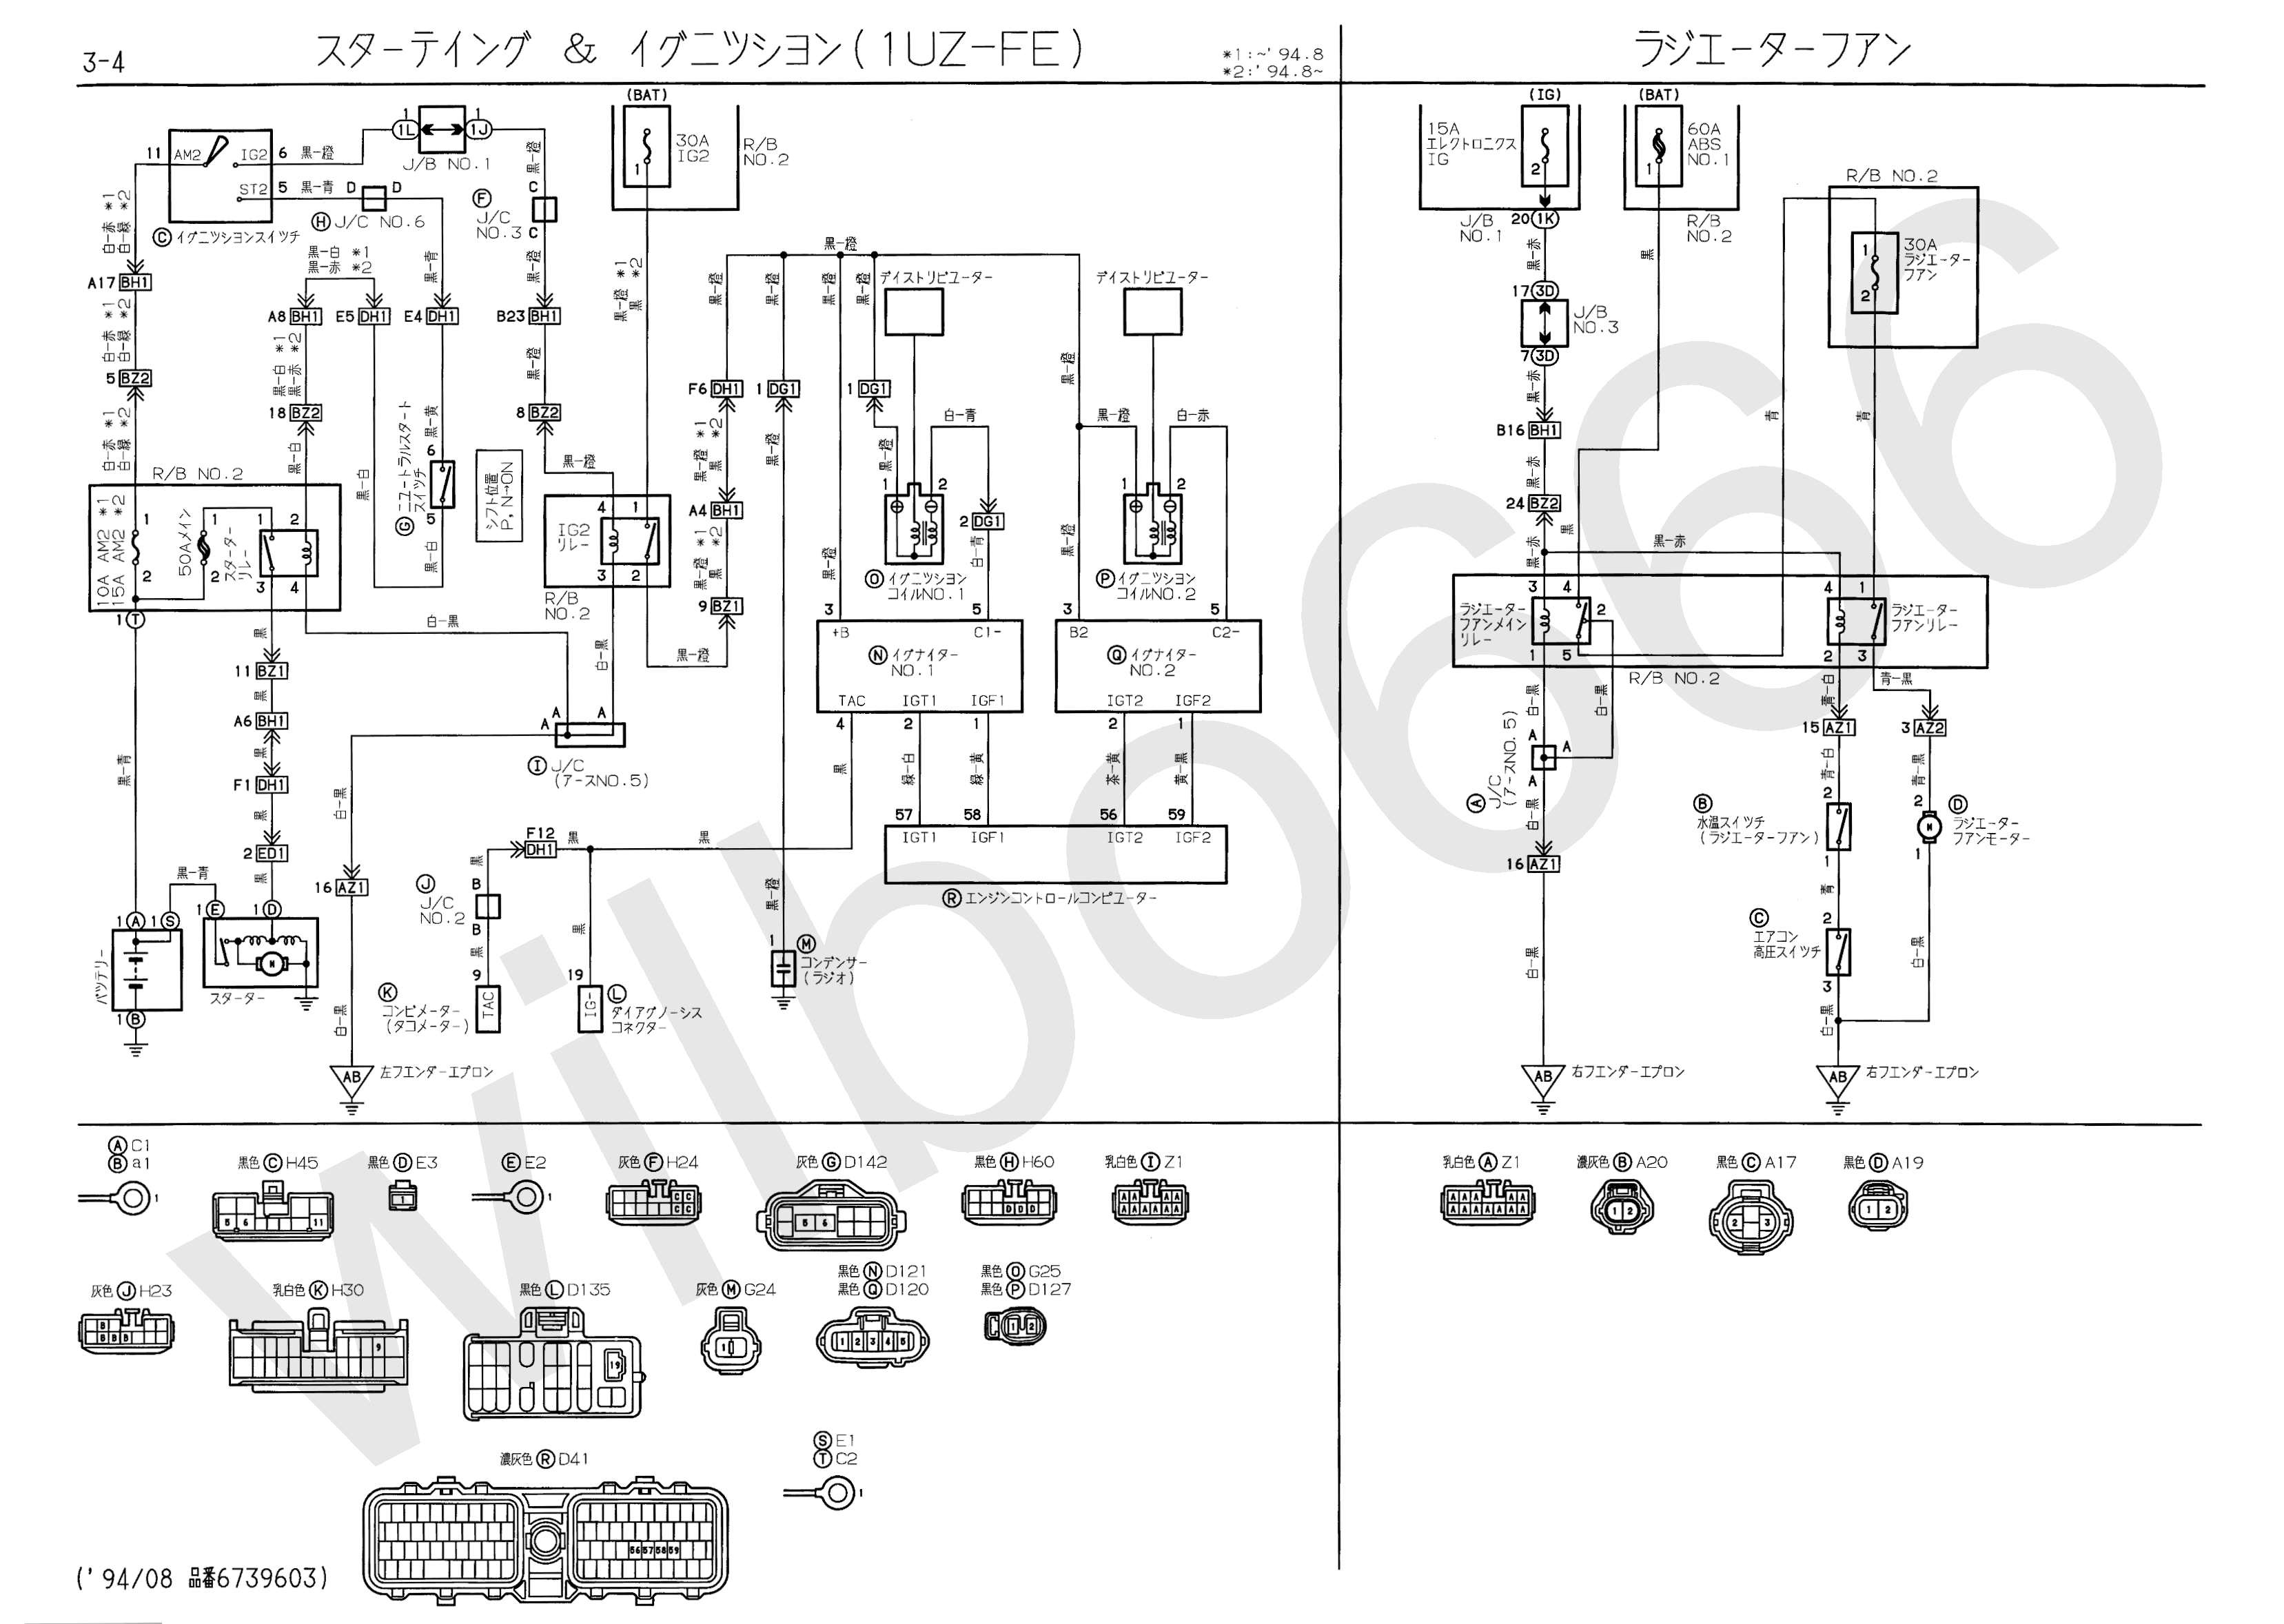 wilbo666 1uz fe uzs143 aristo engine wiring rh wilbo666 pbworks com firing diagram 2007 ford edge v-6 firing diagram 2007 ford edge v-6